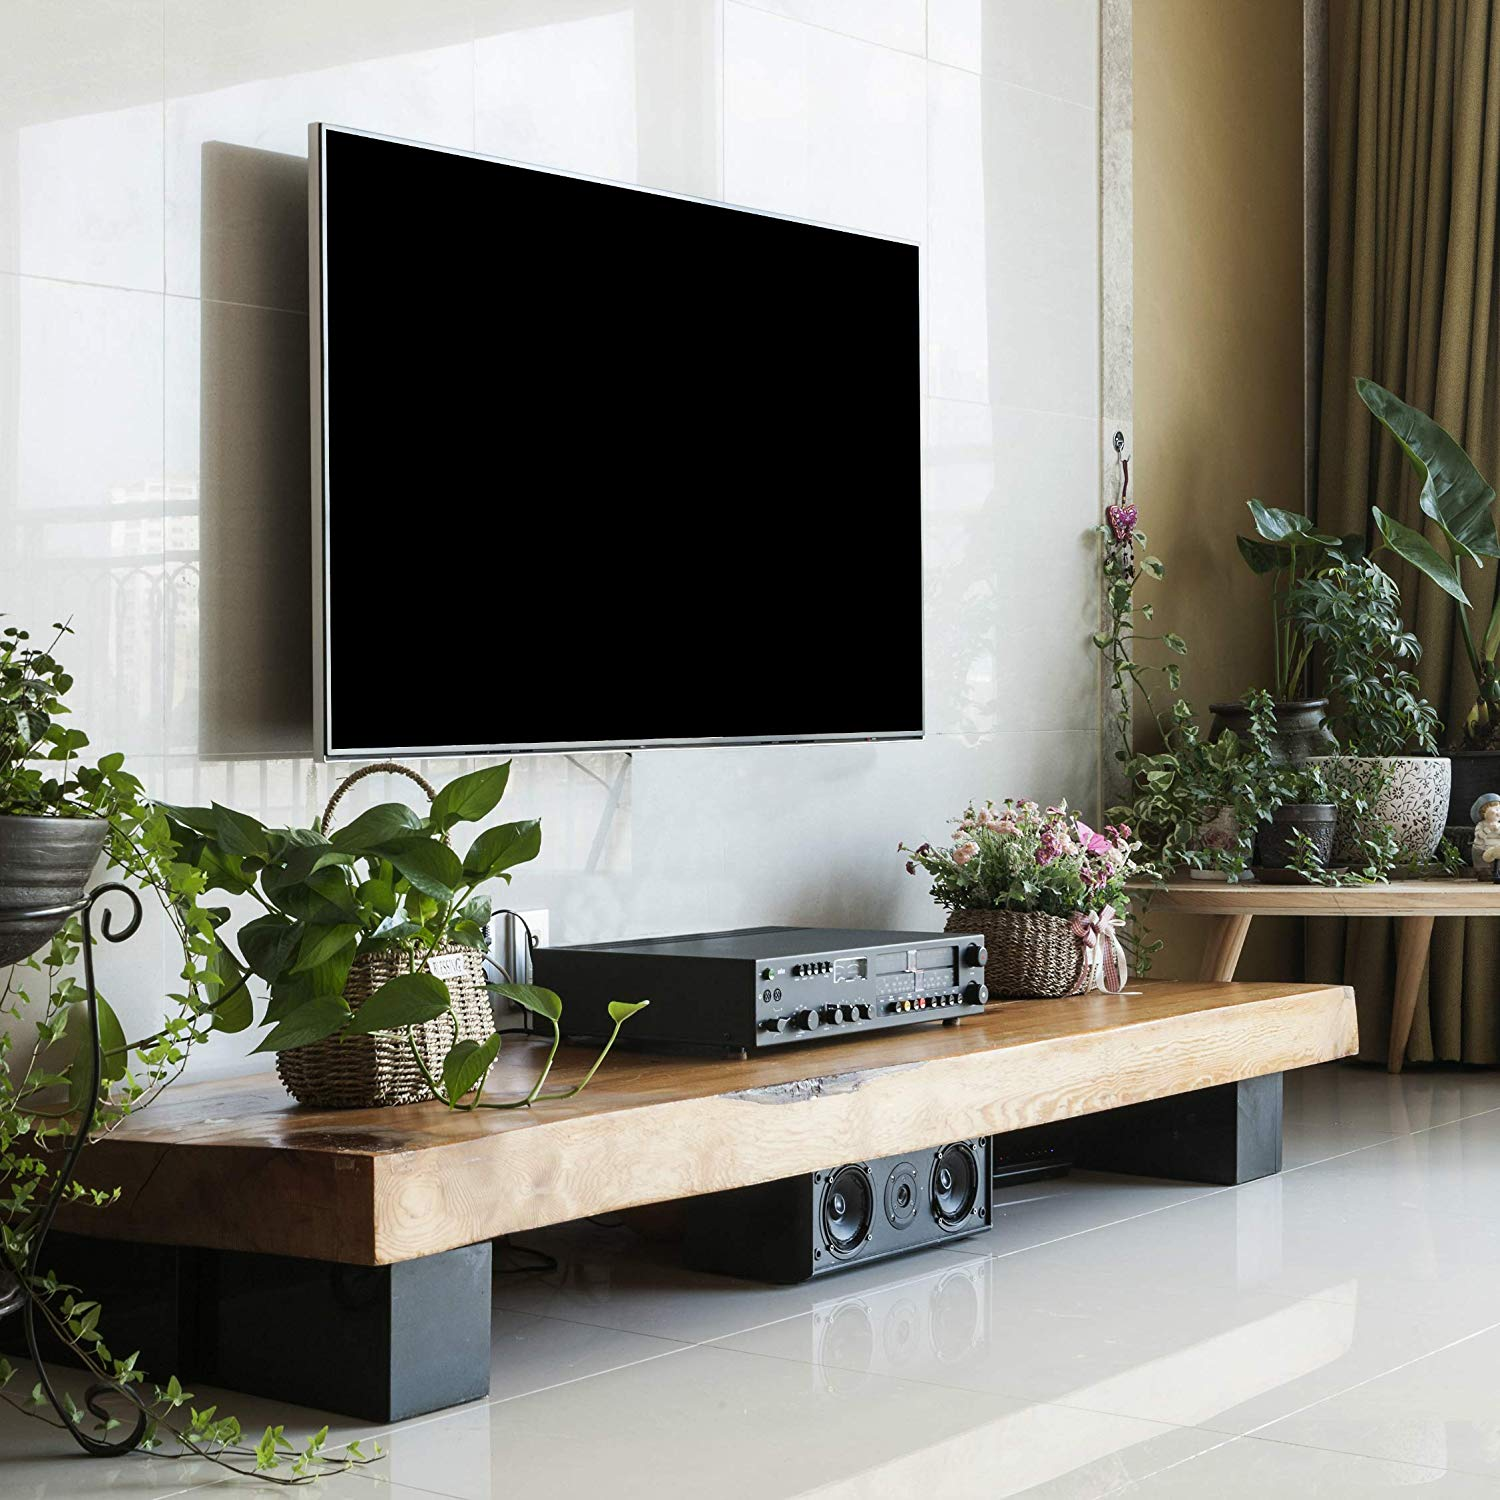 Handmade Wood TV Stand Unit Table/Shabby Chic Storage Cabinet Accent Cappuccino Coffee End Table/Vintage Rustic Home Living Room Furniture Organizer